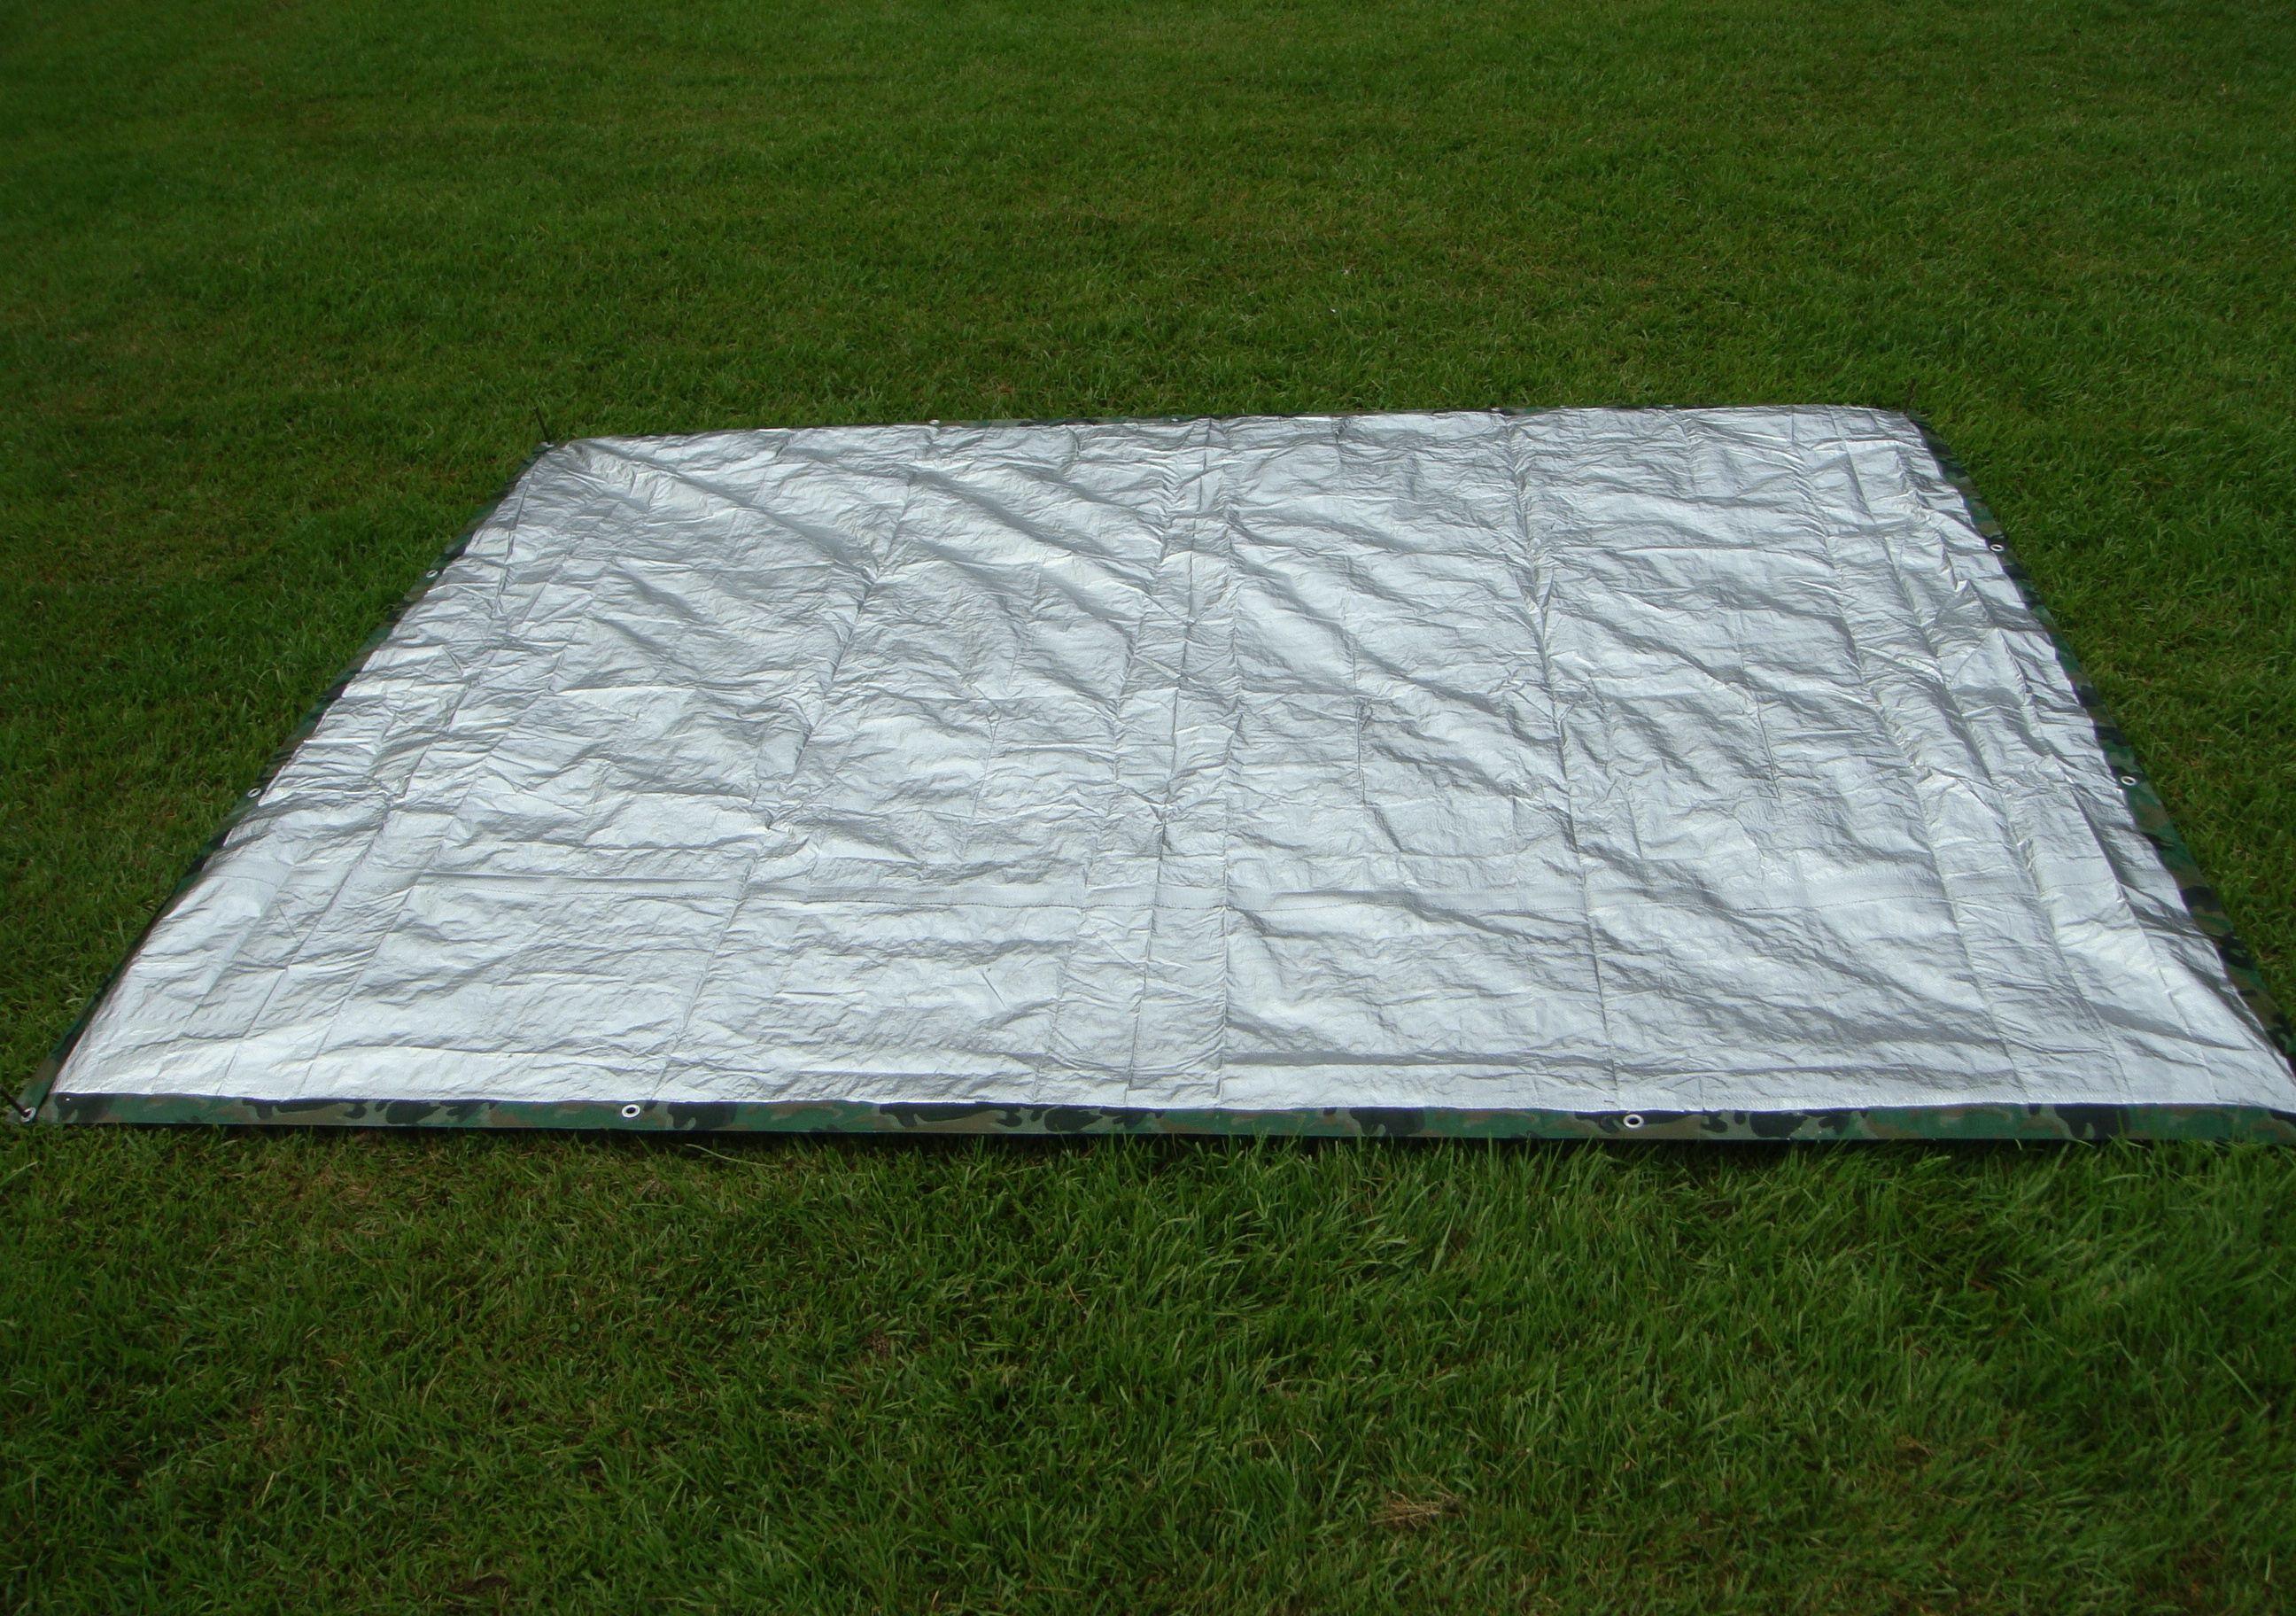 When it was nice and dry I gave it another round of durability testing and it seemed to work great. Even better painting the two 8u0027 x 10u0027 tarps barely ... & Make an Inexpensive Reflector Tarp for a Warm Survival Shelter ...